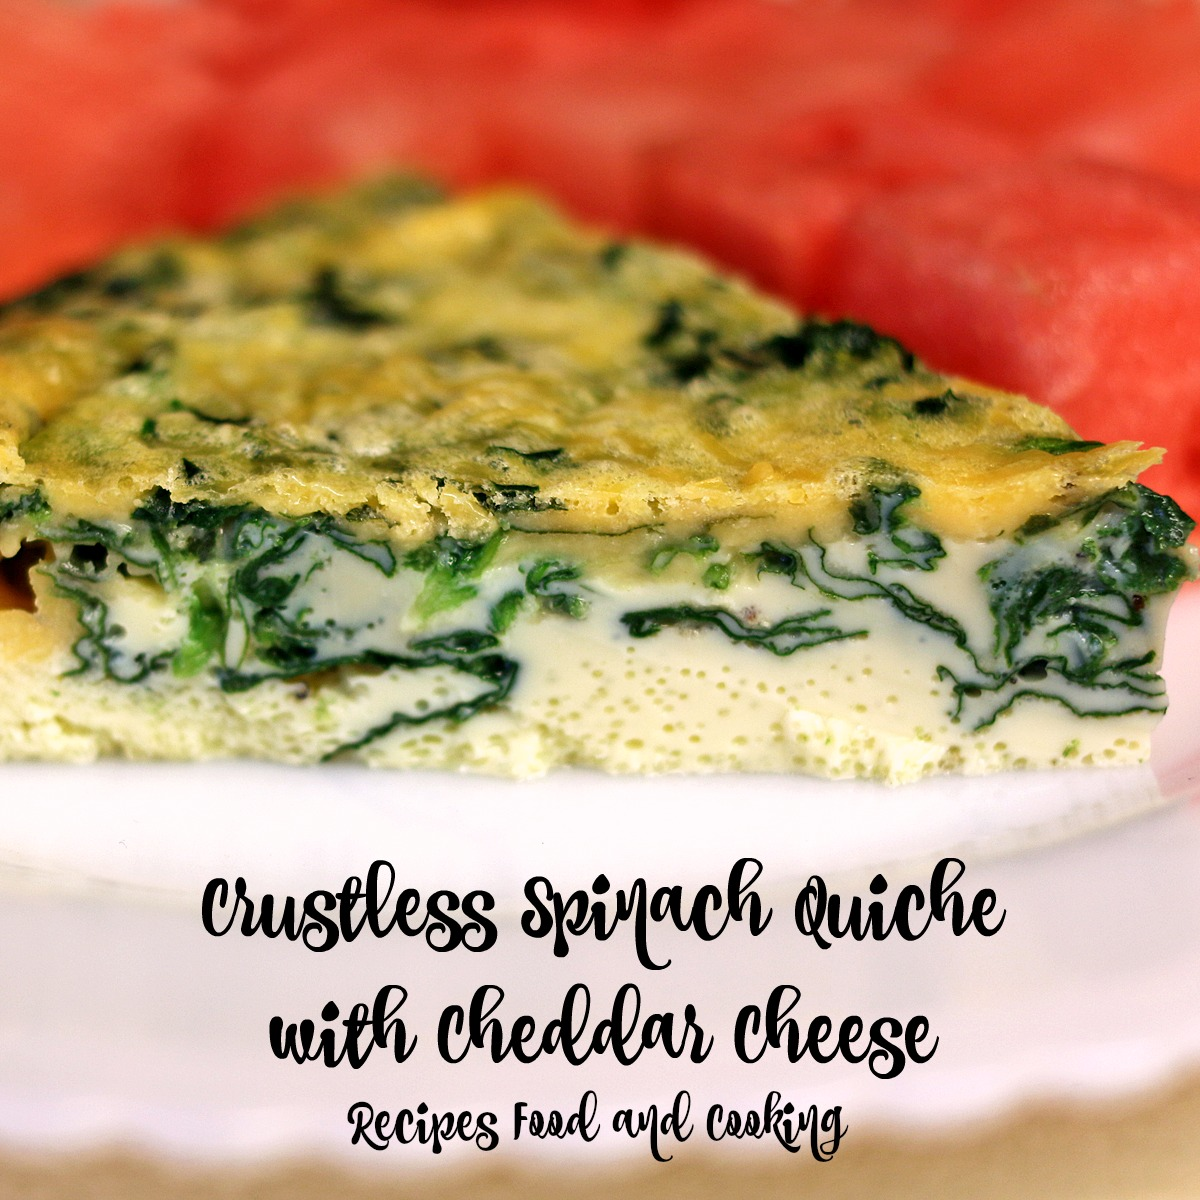 Crustless Spinach Quiche with Cheddar Cheese